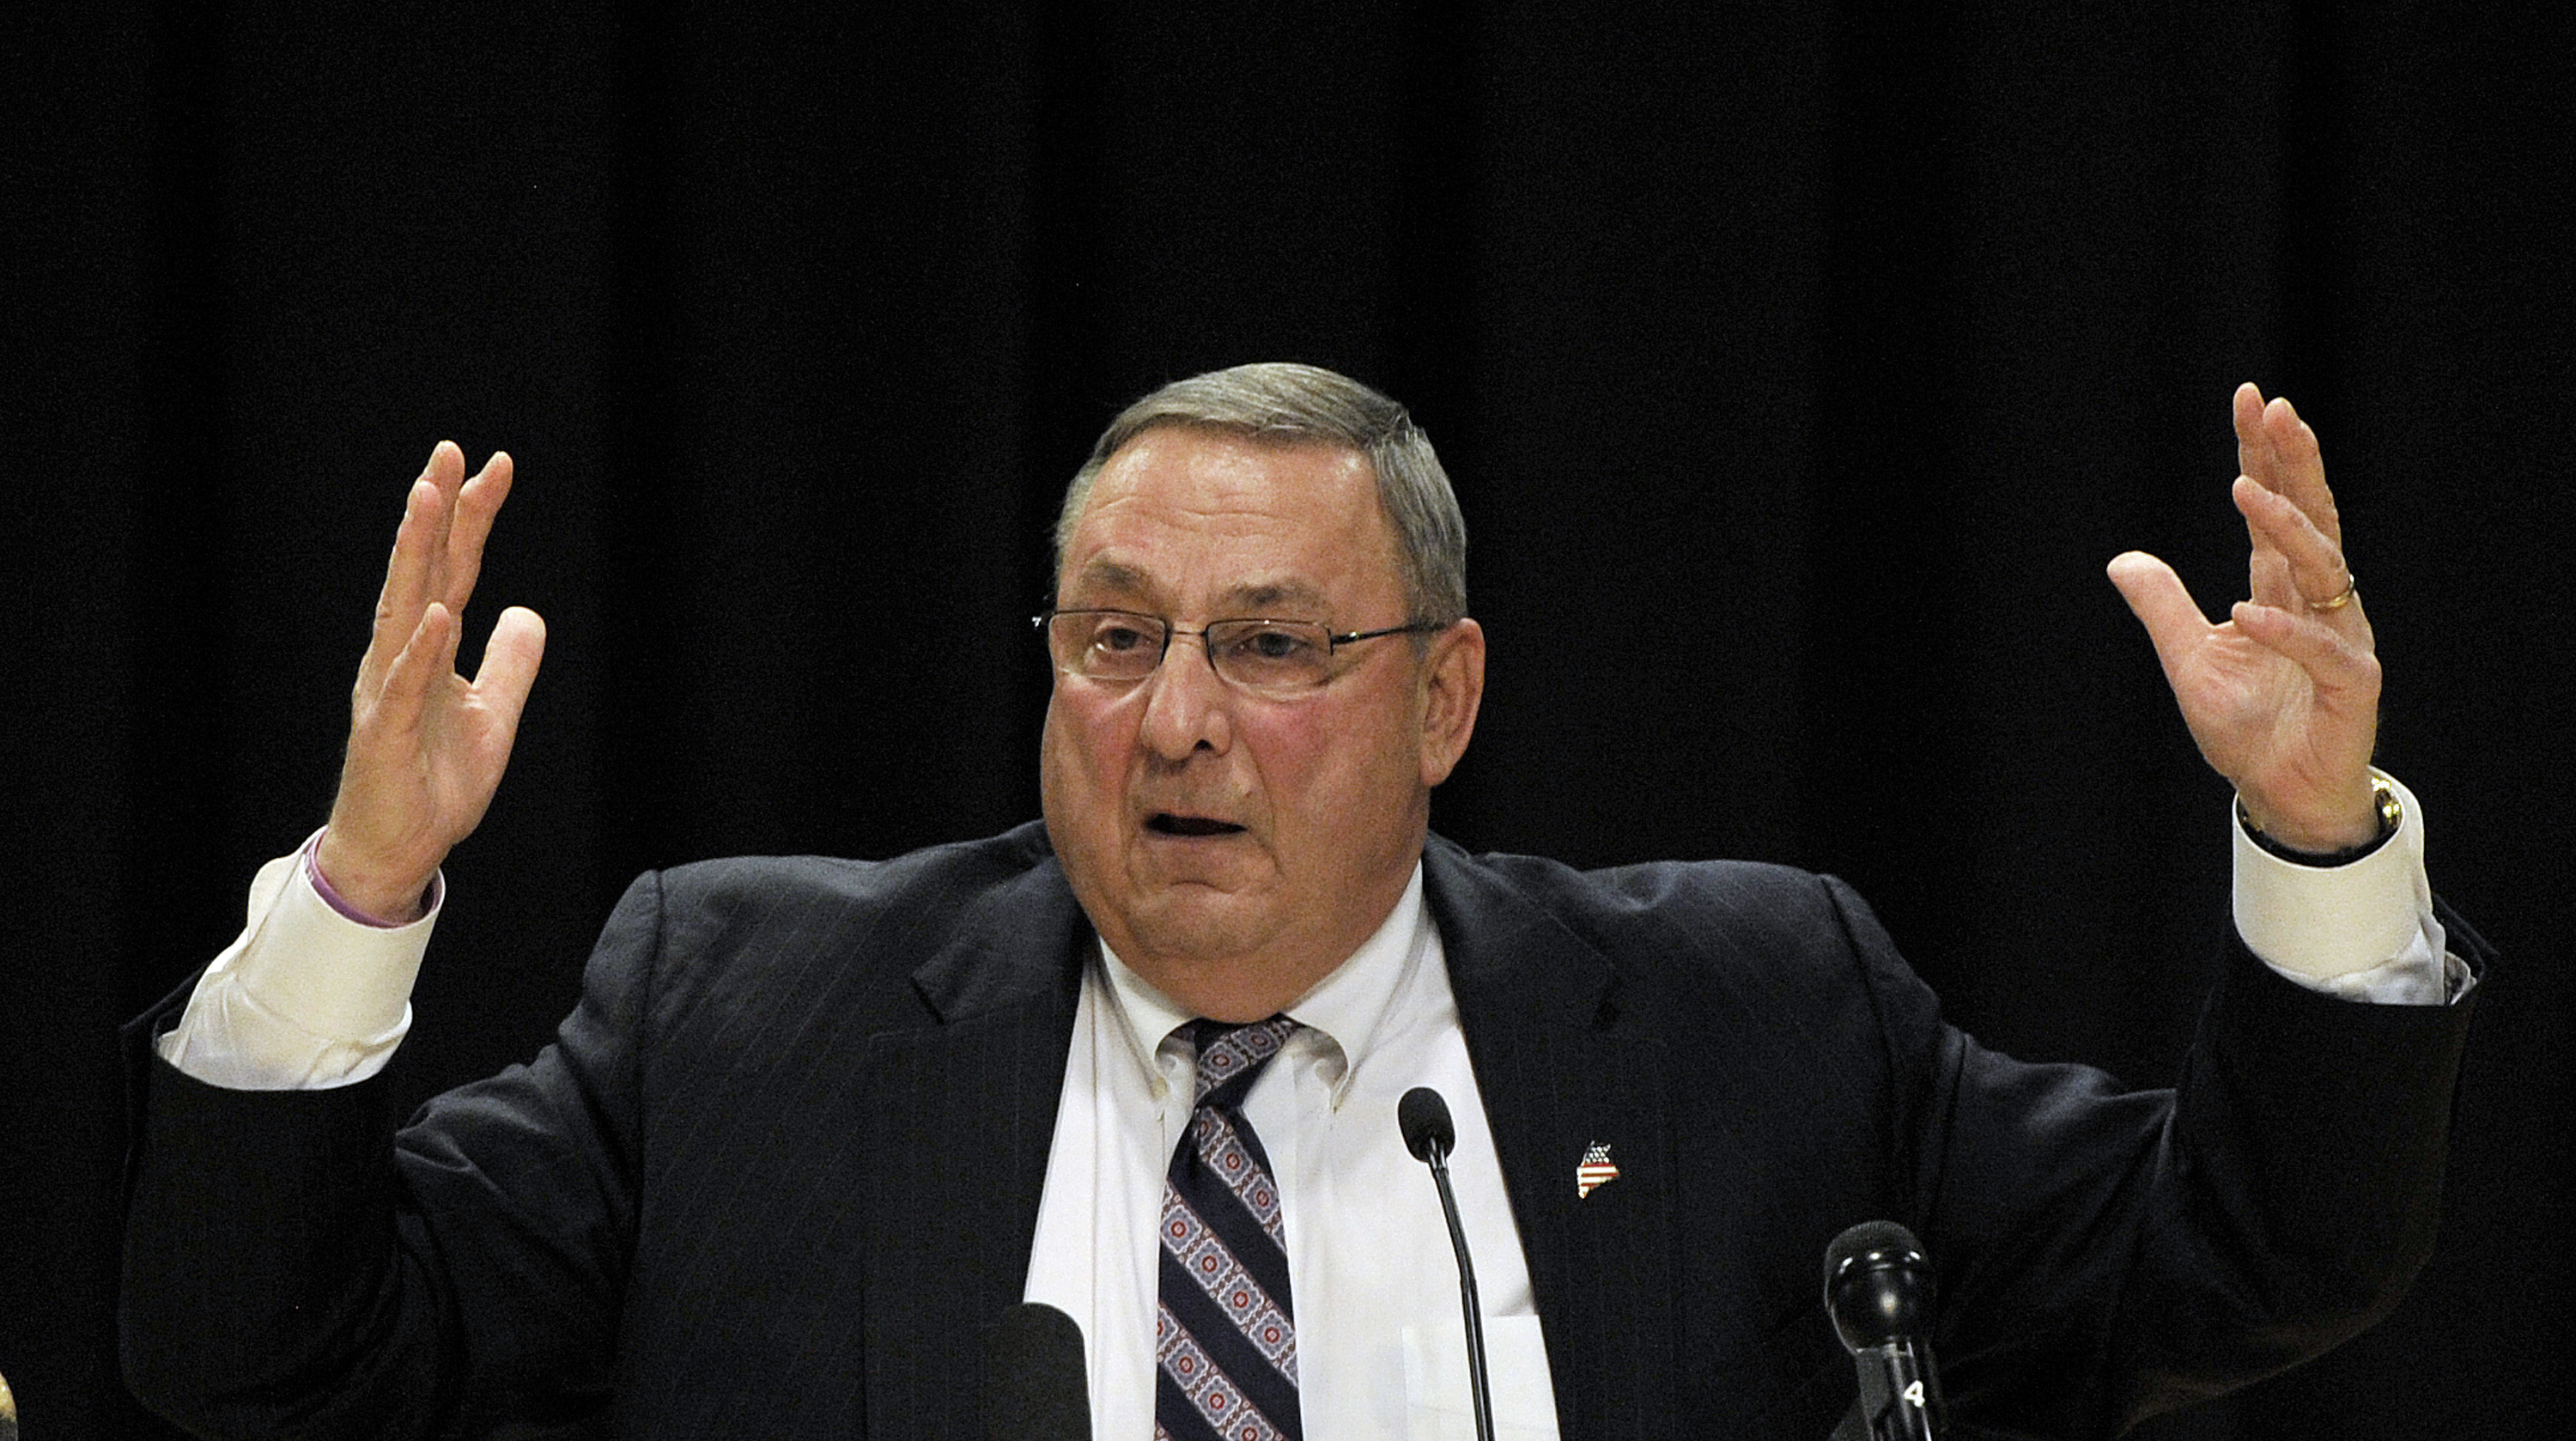 BIDDEFORD, ME - APRIL 19: Gov. Paul LePage holds a town hall meeting at Biddeford High School Tuesday, April 19, 2016. (Photo by Shawn Patrick Ouellette/Staff Photographer)